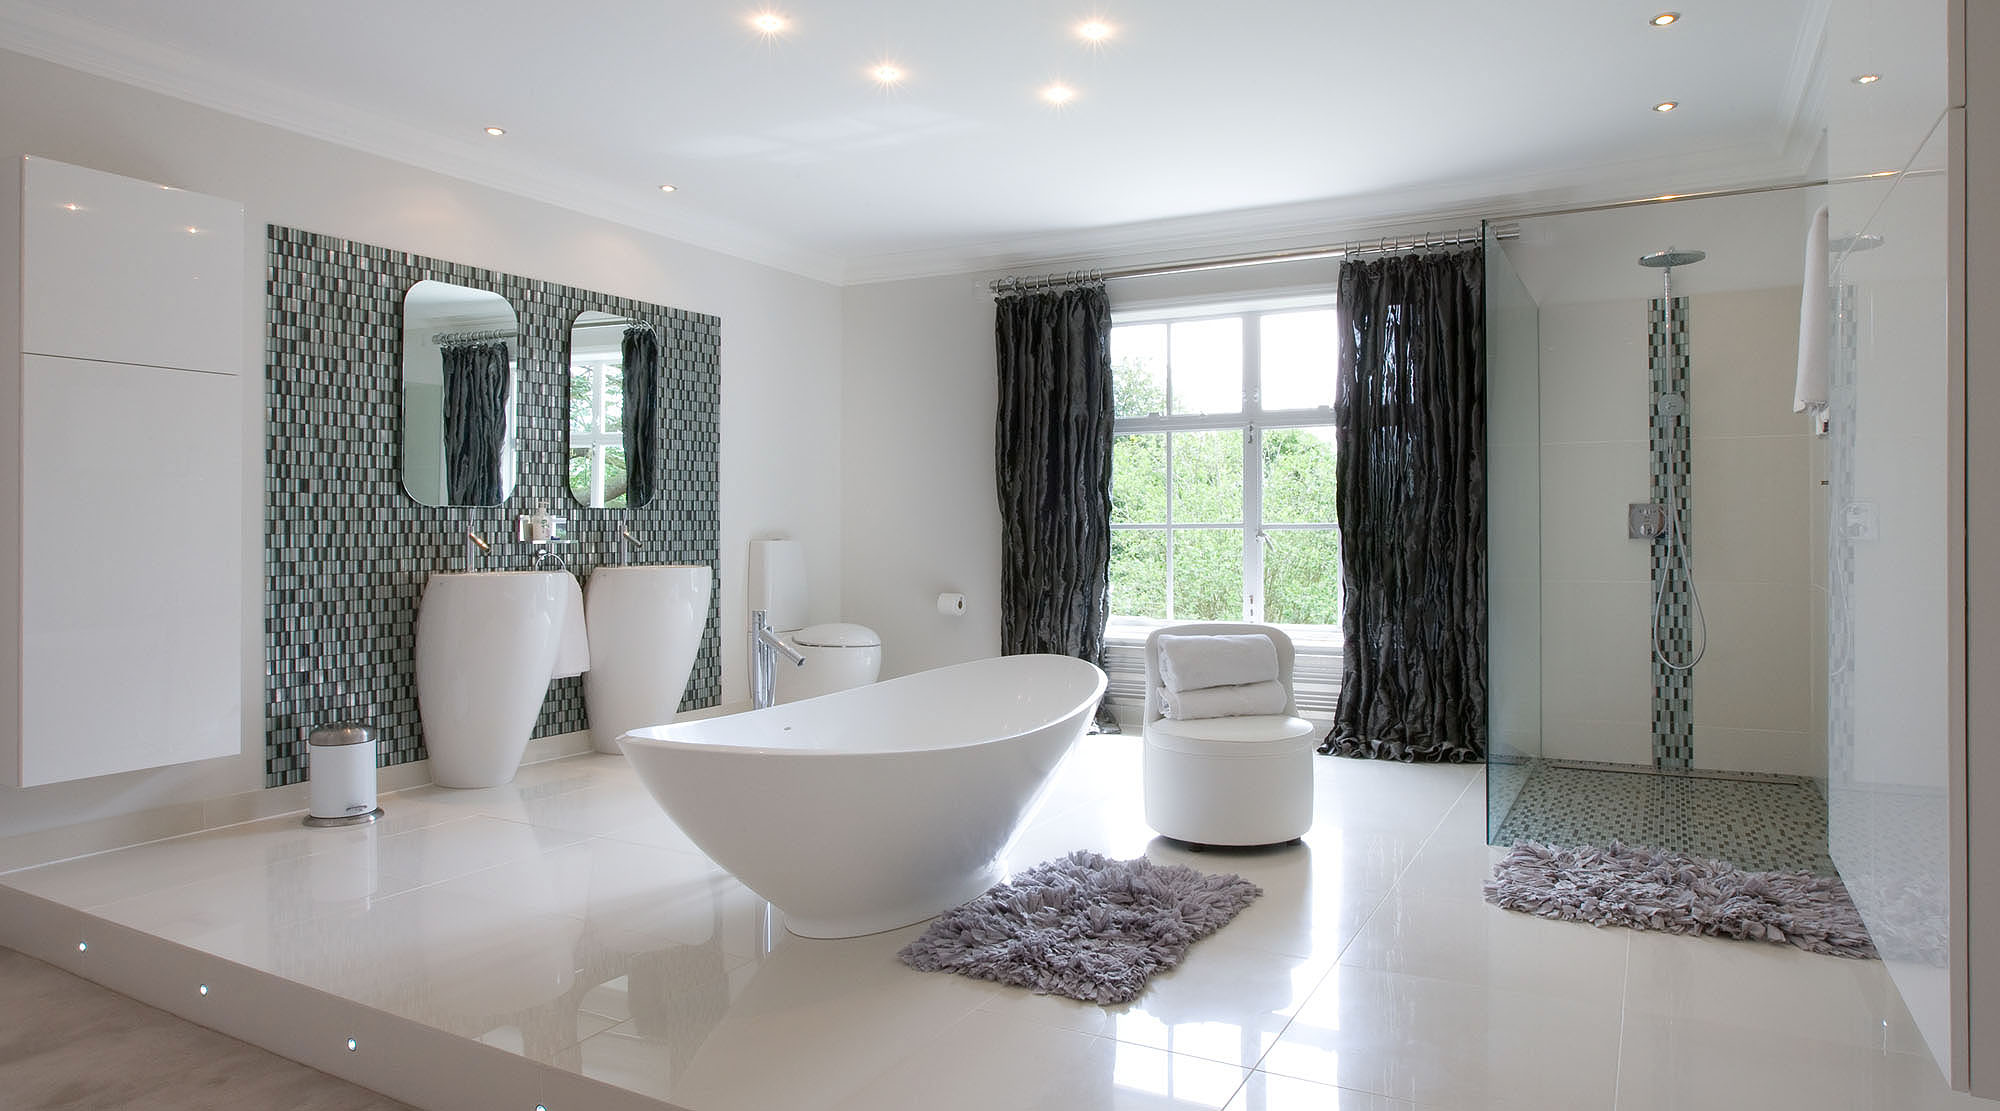 Bathroom with metallic curtains